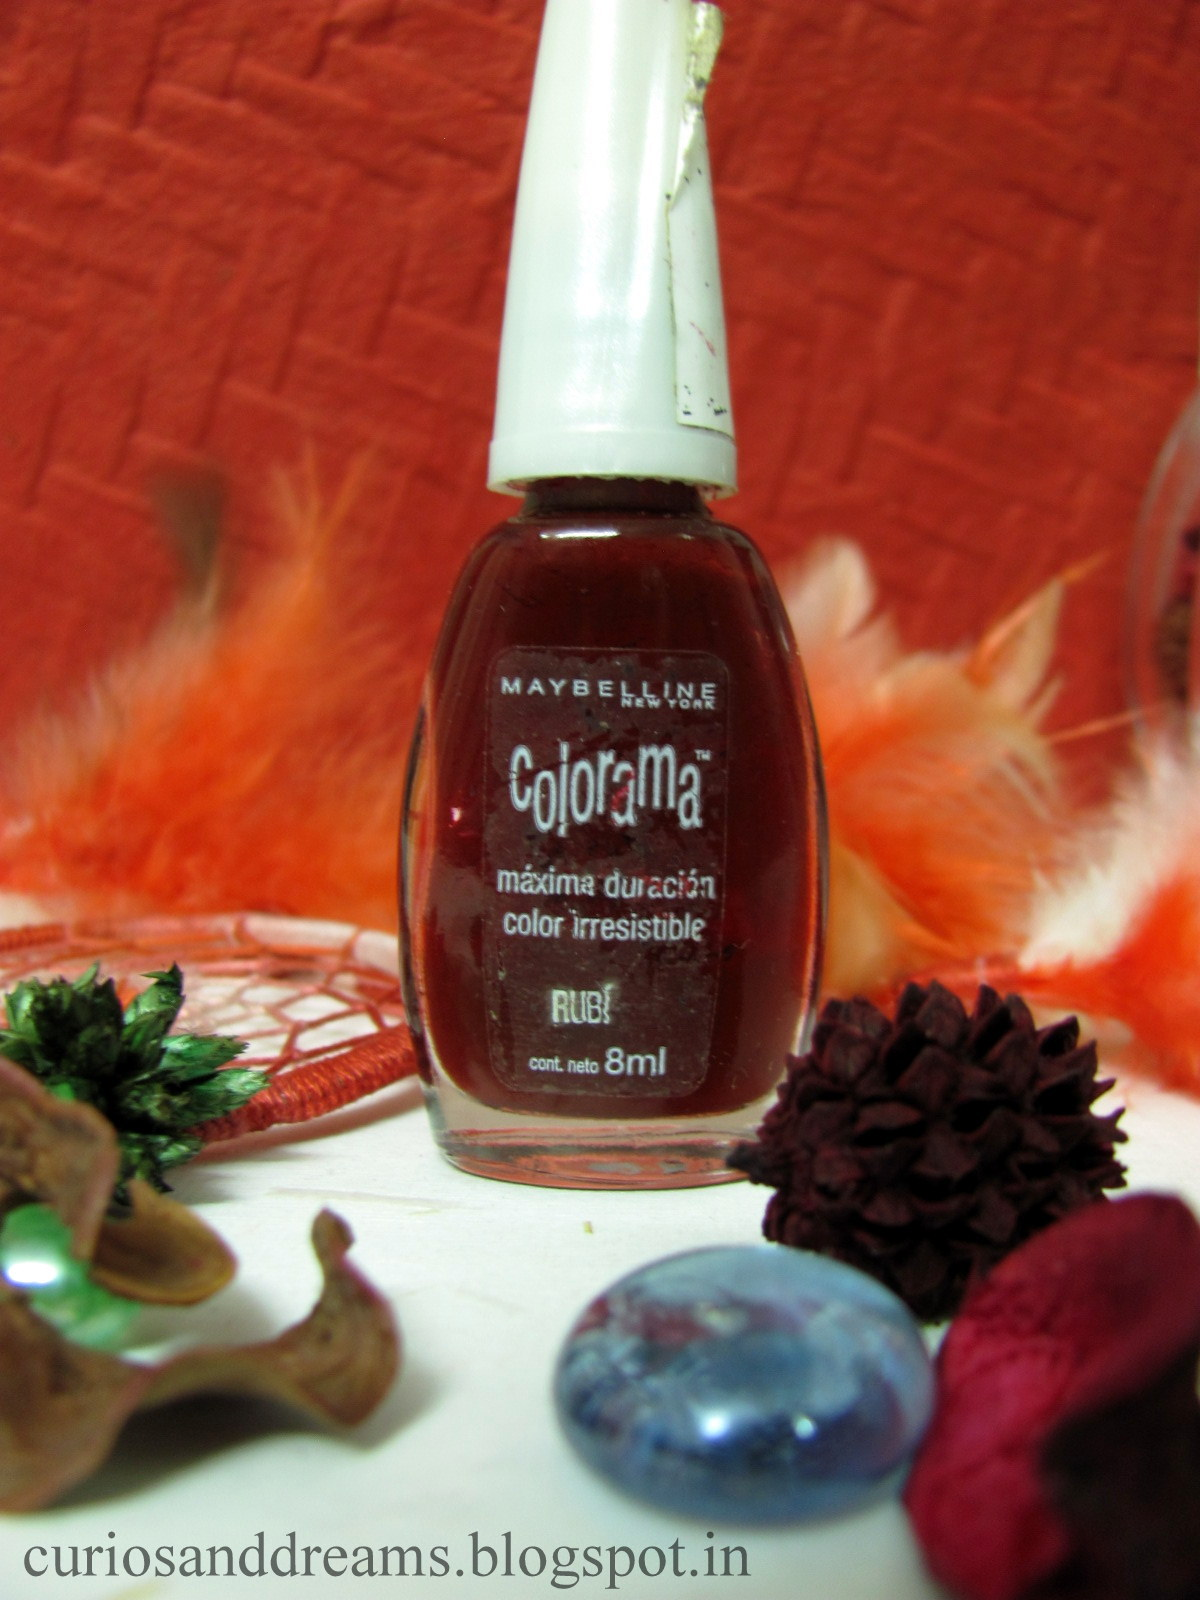 Maybelline Colorama Rubi review, Maybelline Colorama Rubi , colorama rubi review